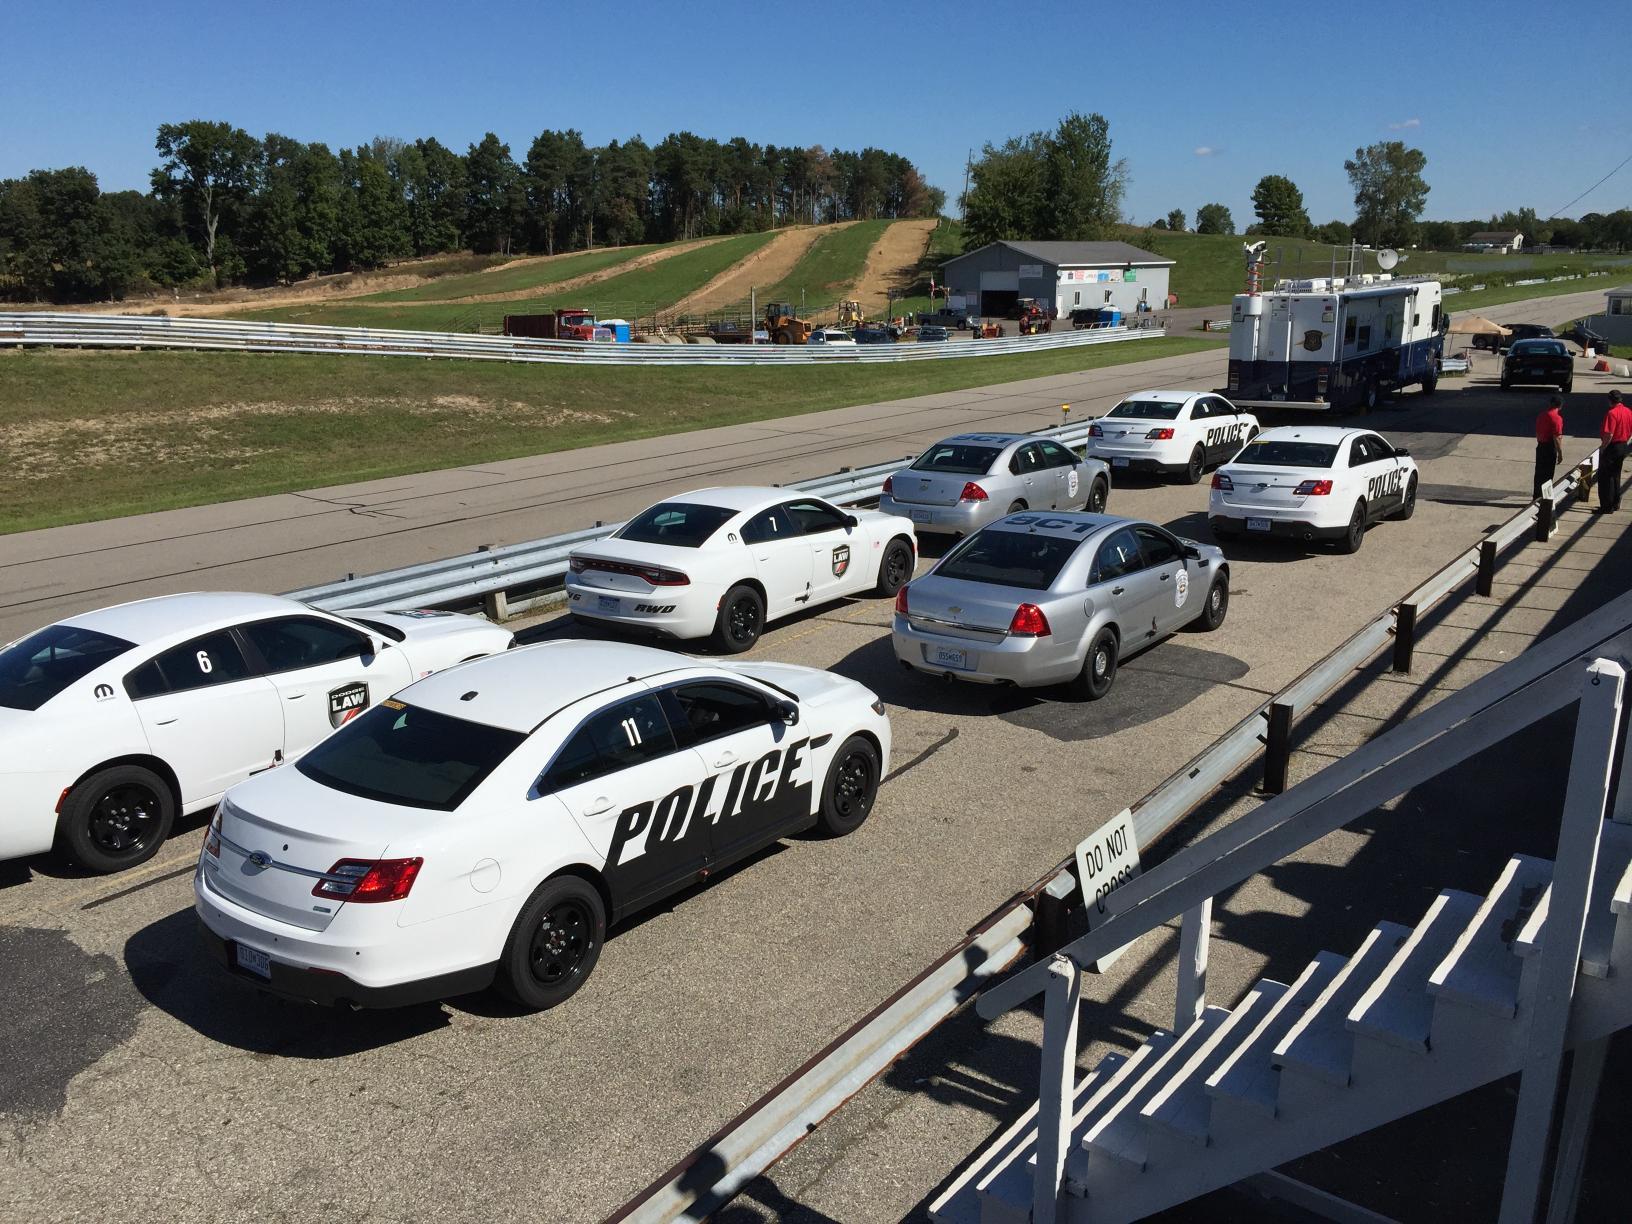 Ford Police Cars Are More Competitive Than What Chevrolet And - Chevrolet ford